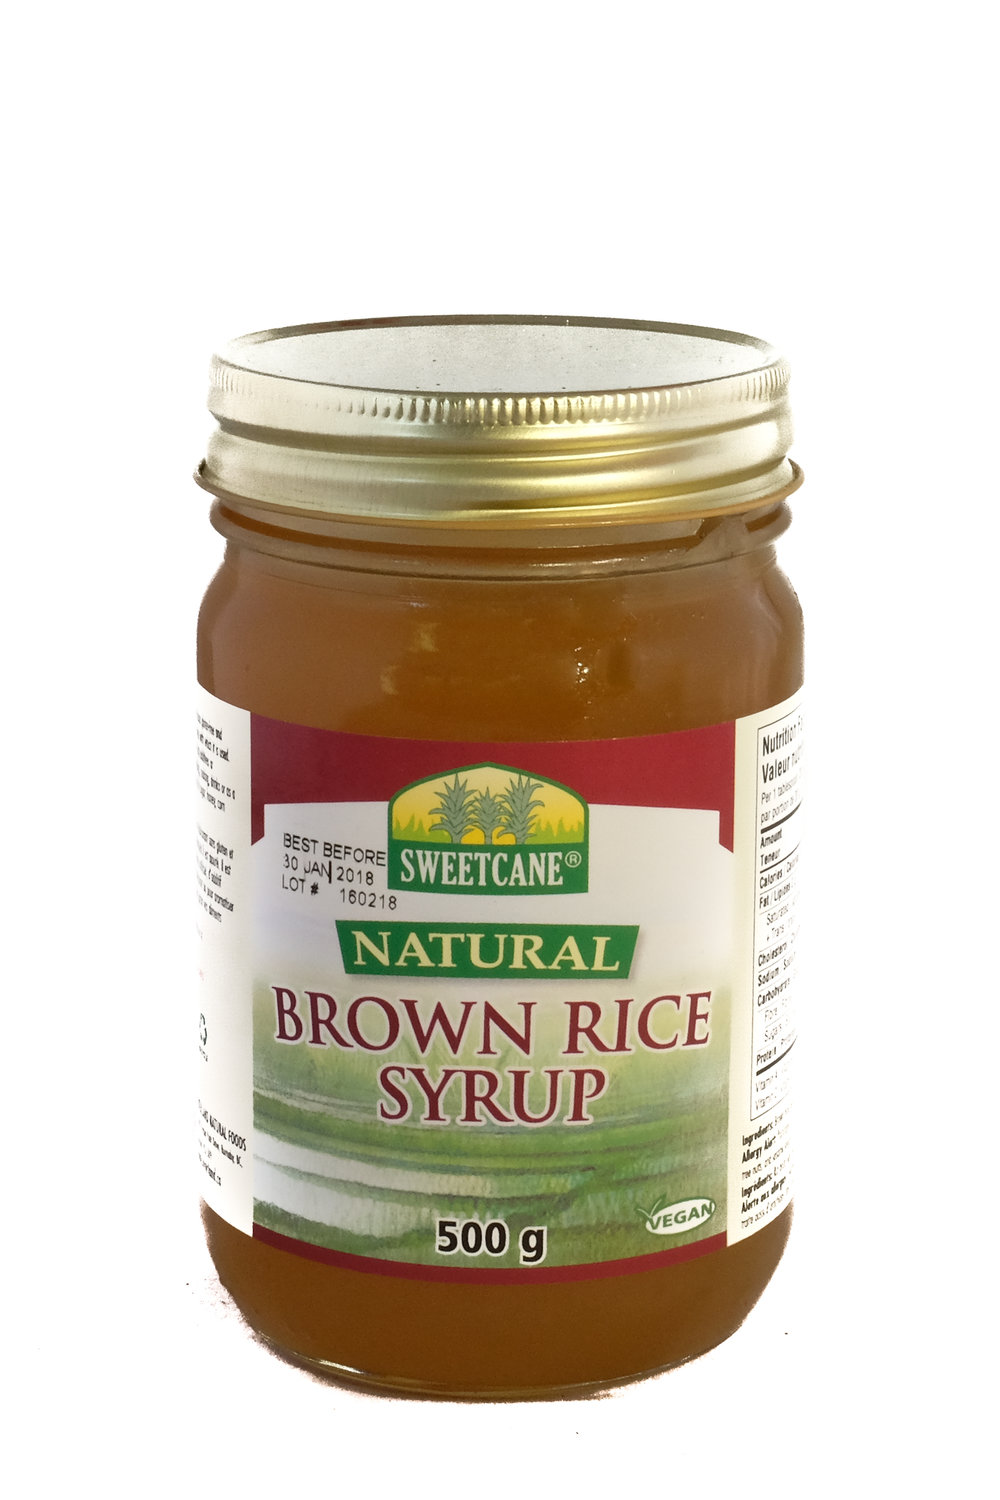 Natural Brown Rice Syrup